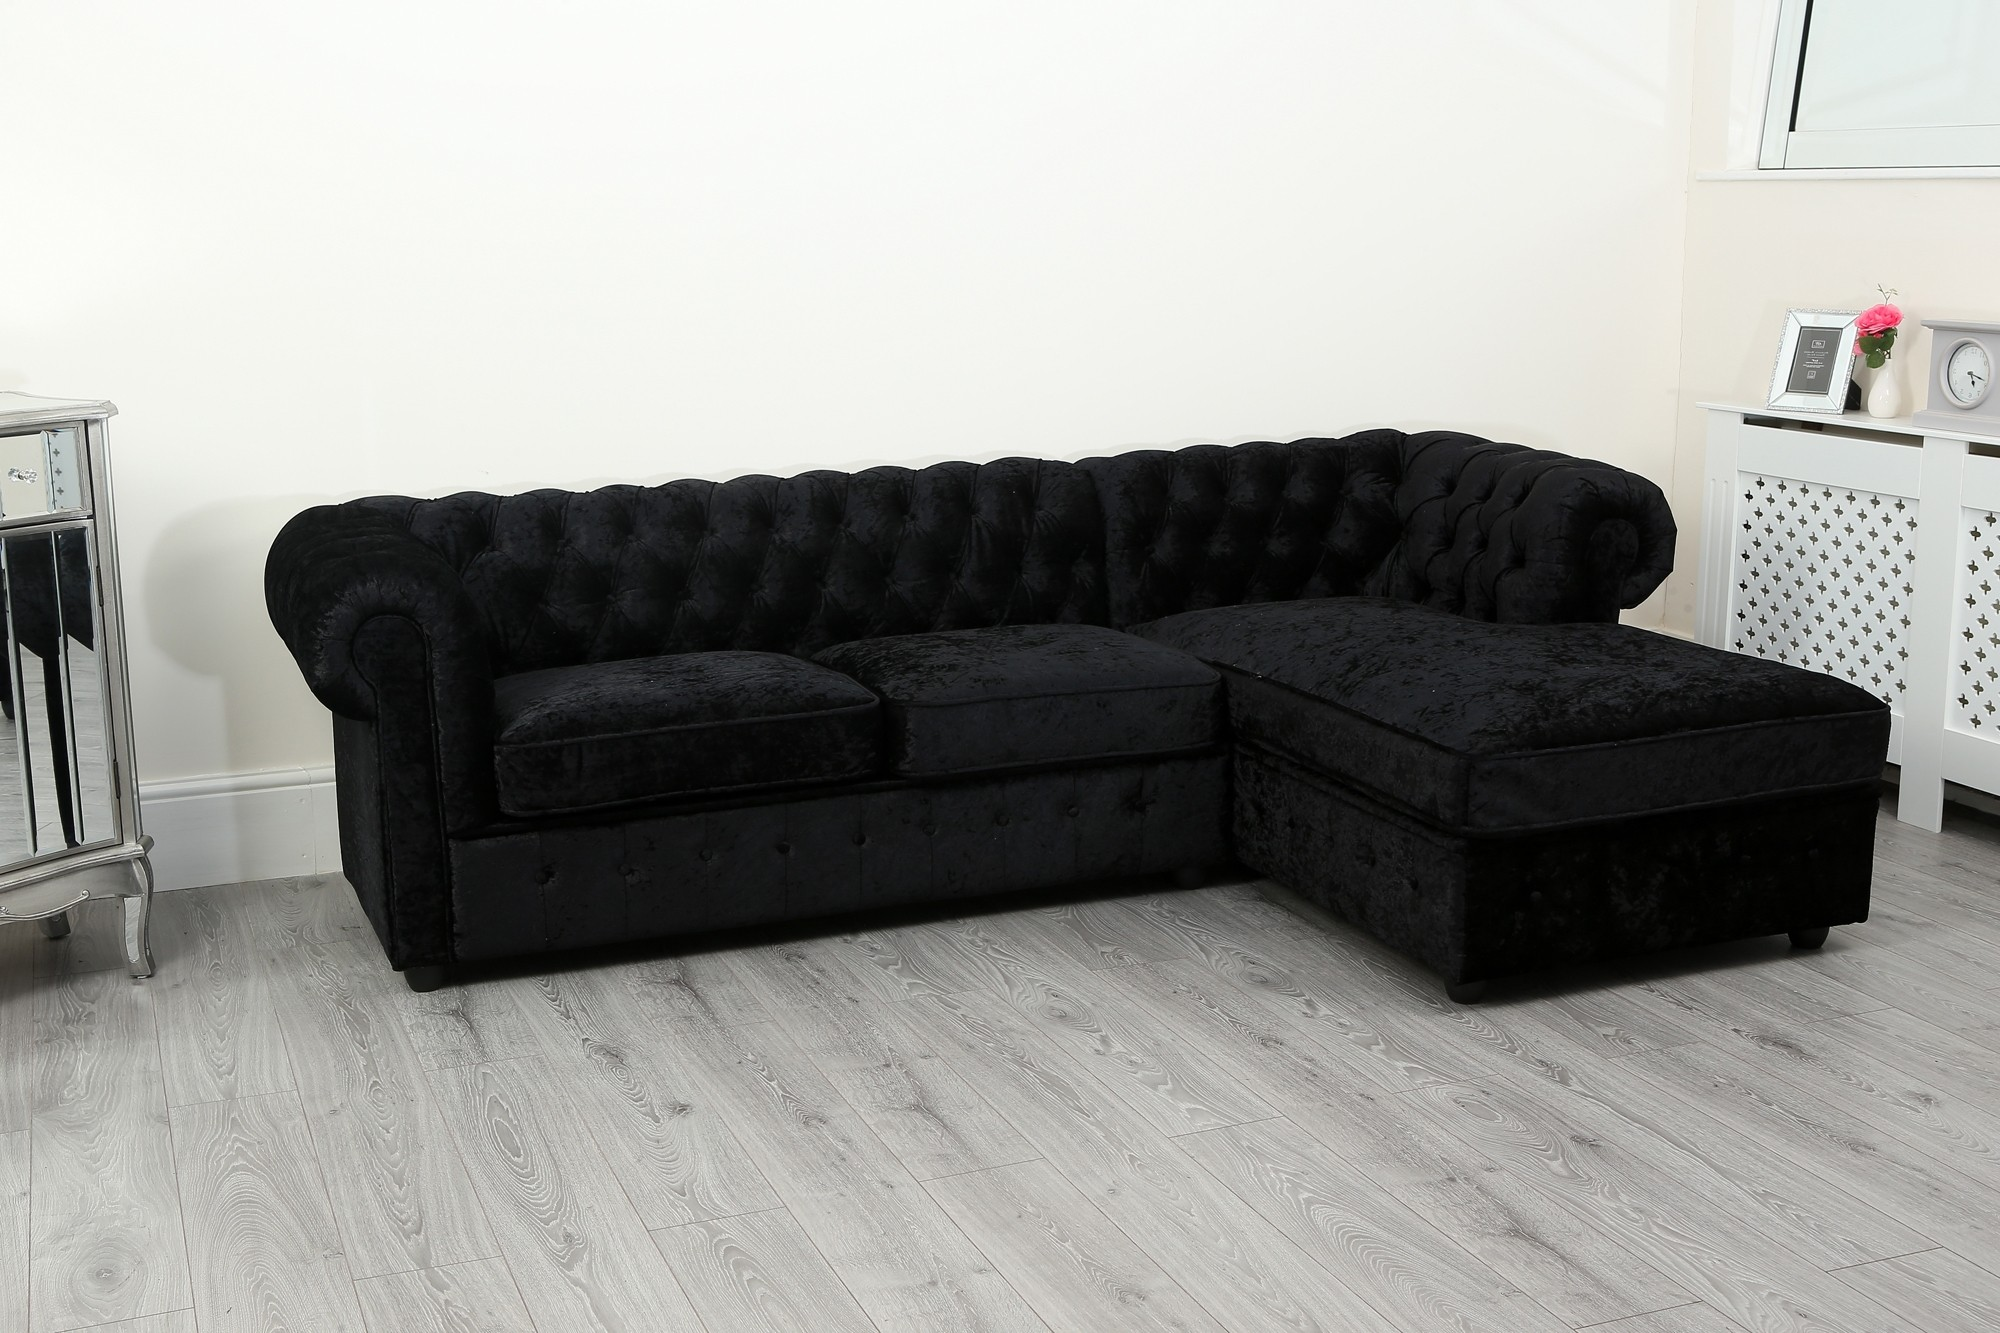 Empire Chesterfield Corner Sofa In Black Crushed Velvet Abreo Home Furniture